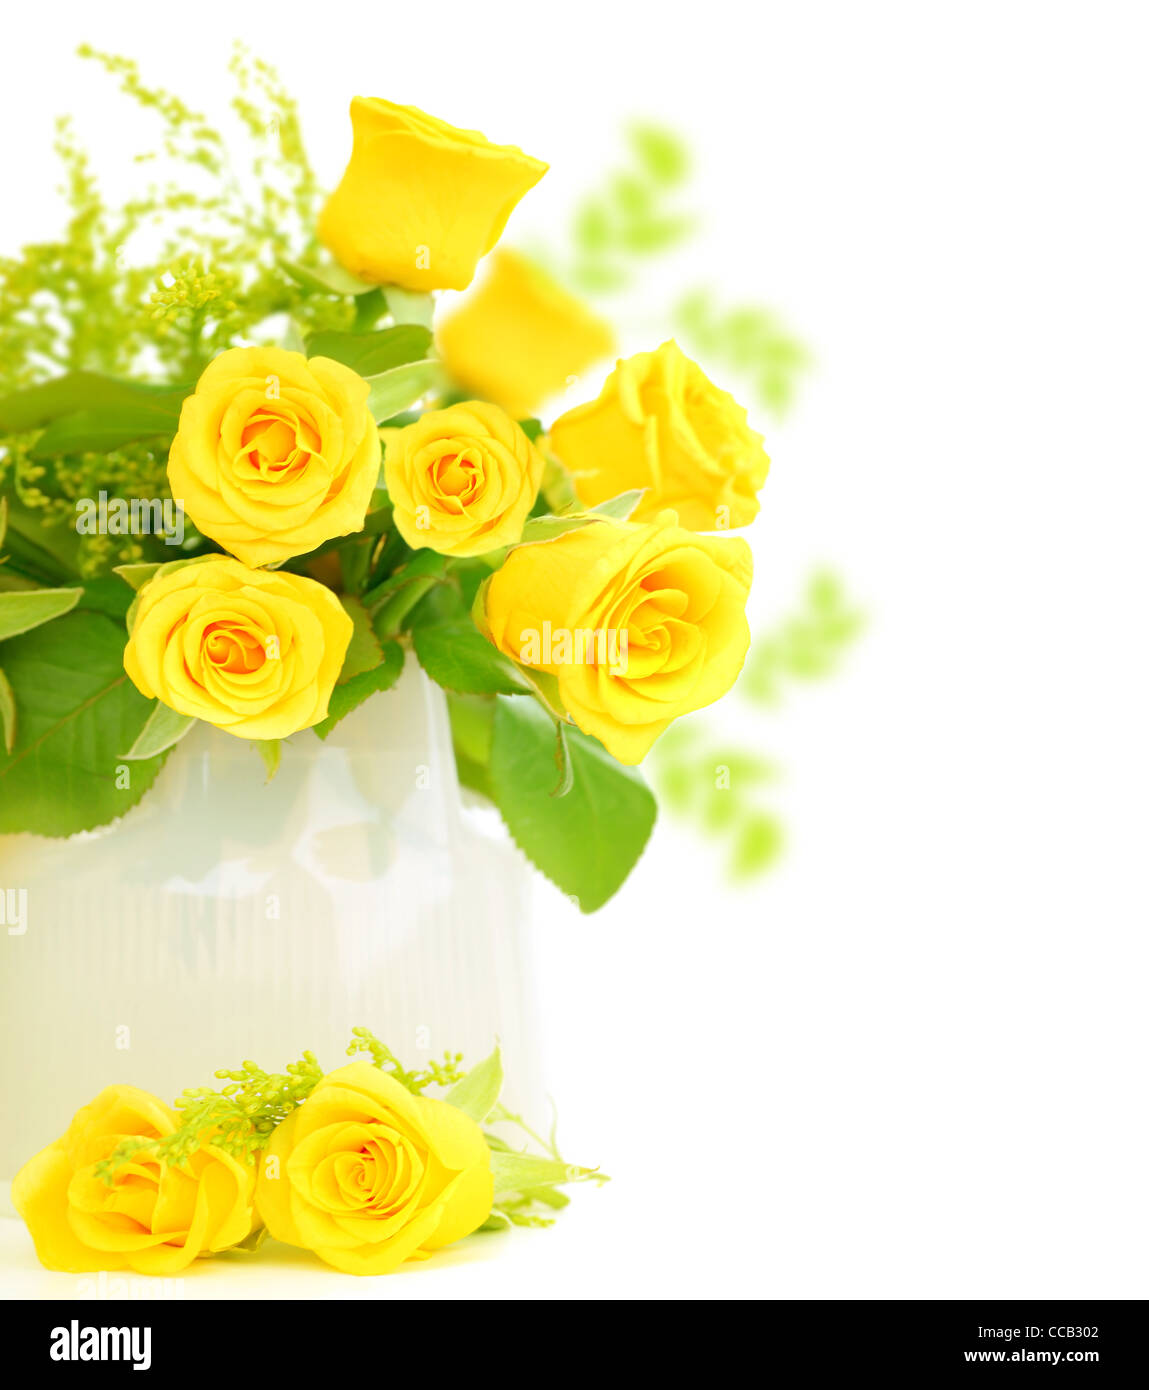 images of white and yellow roses impremedianet